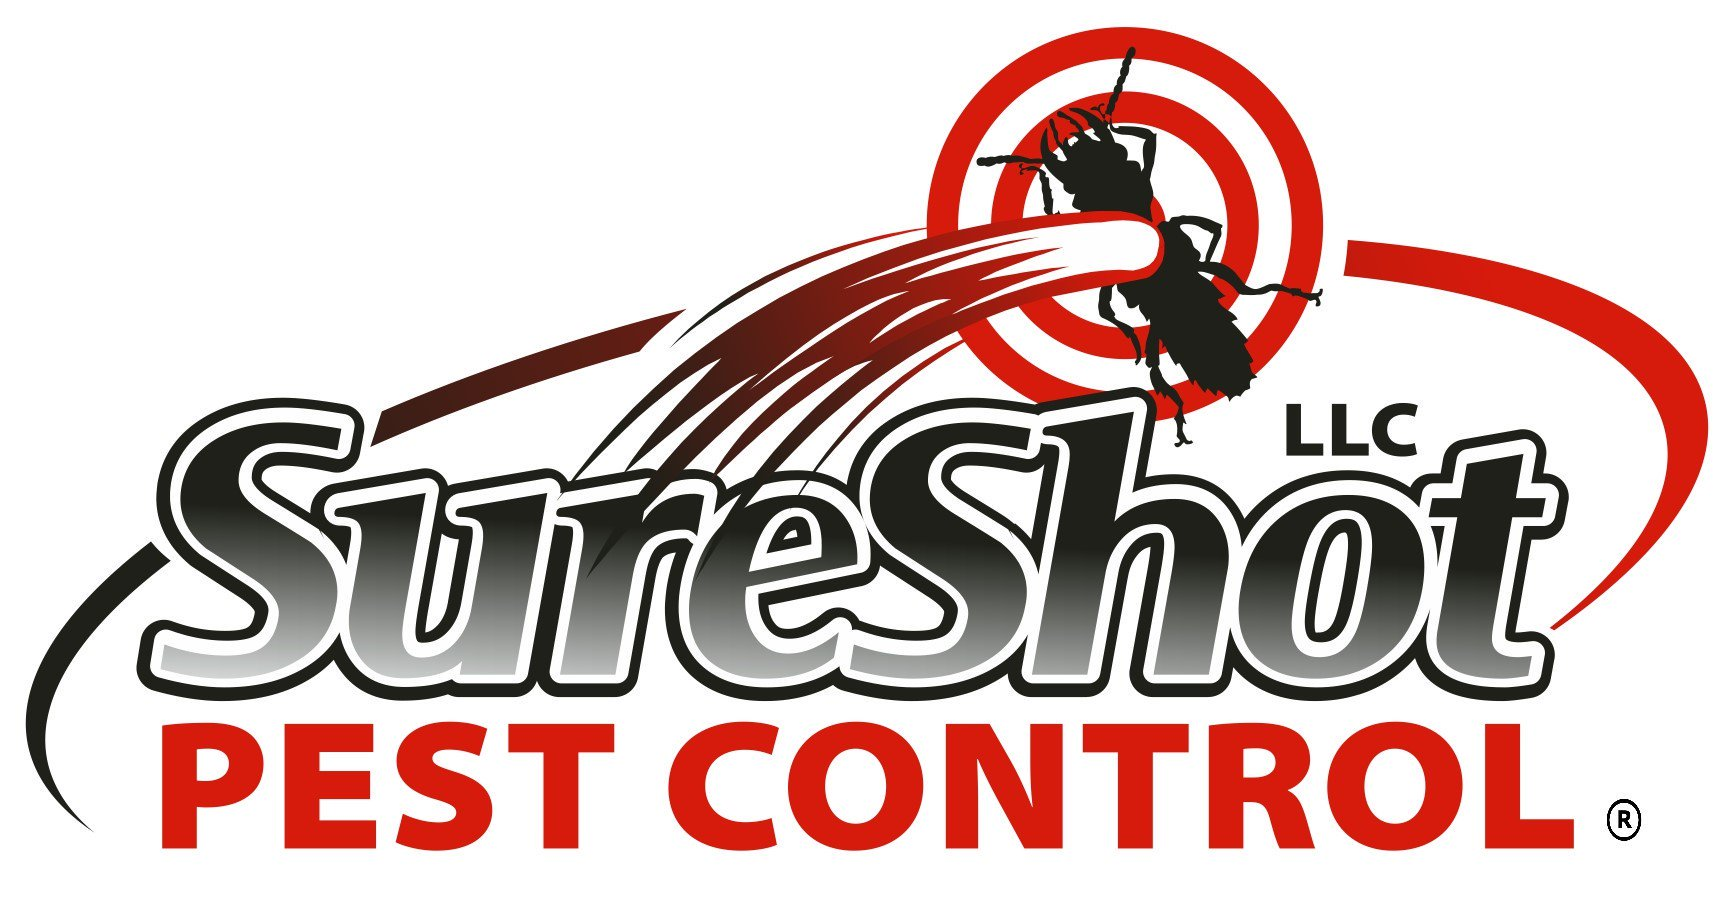 SureShot Pest Control, LLC of Michigan is a quality pest control company serving west, central, and northern Michigan.